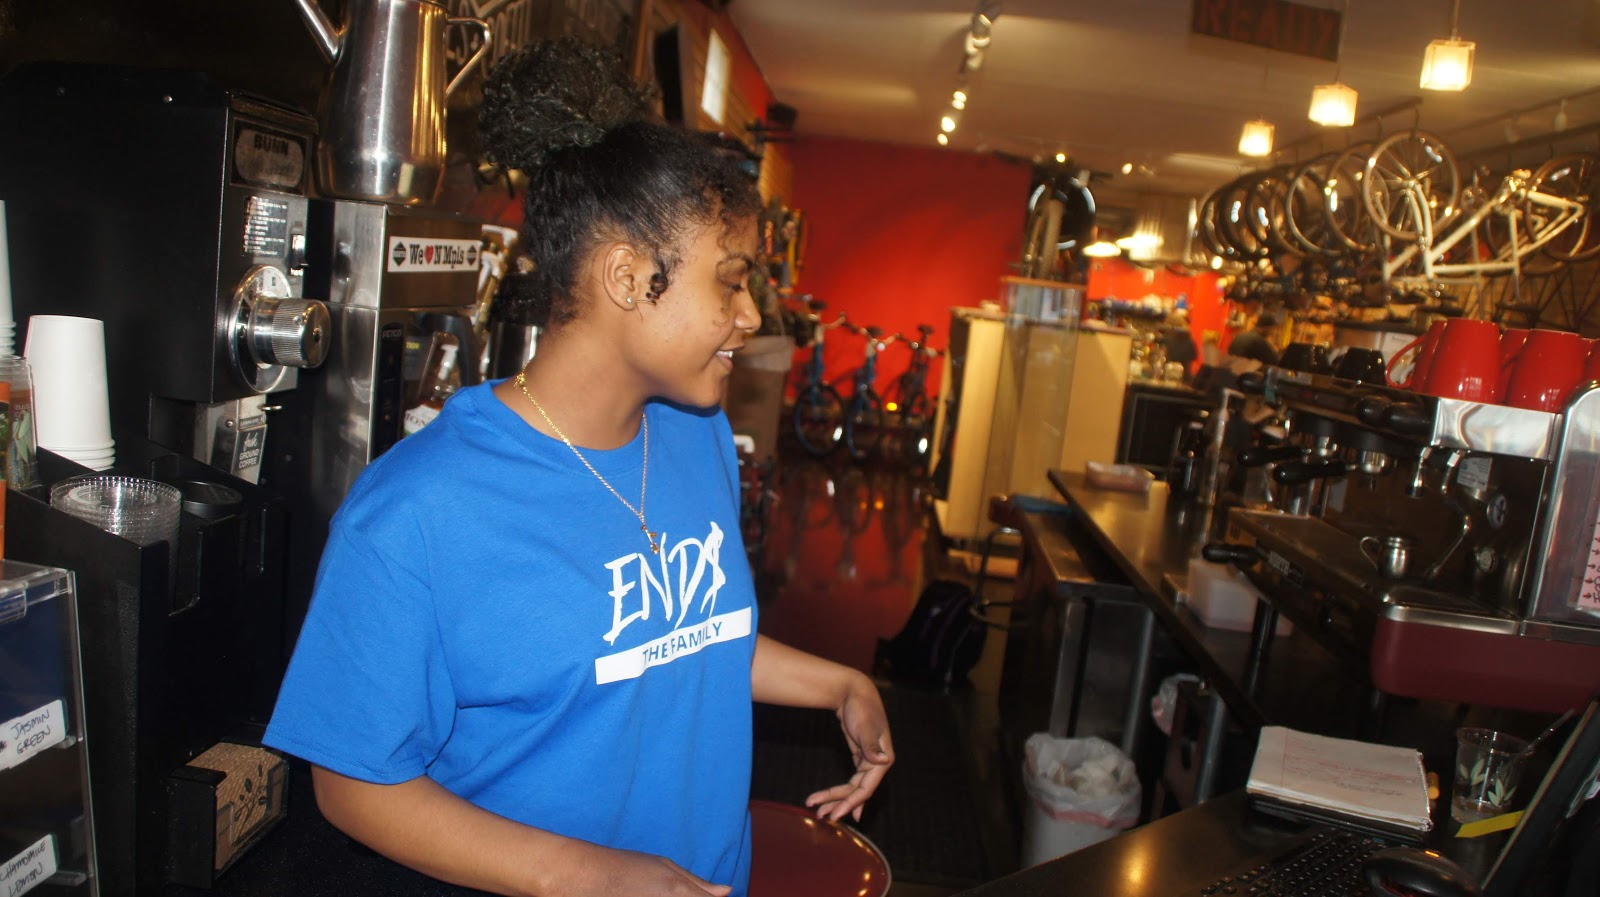 ENDS Photo Featuring END$ The Family Scripture Tshirt    Model Jennifer DeCoteau at Venture Note